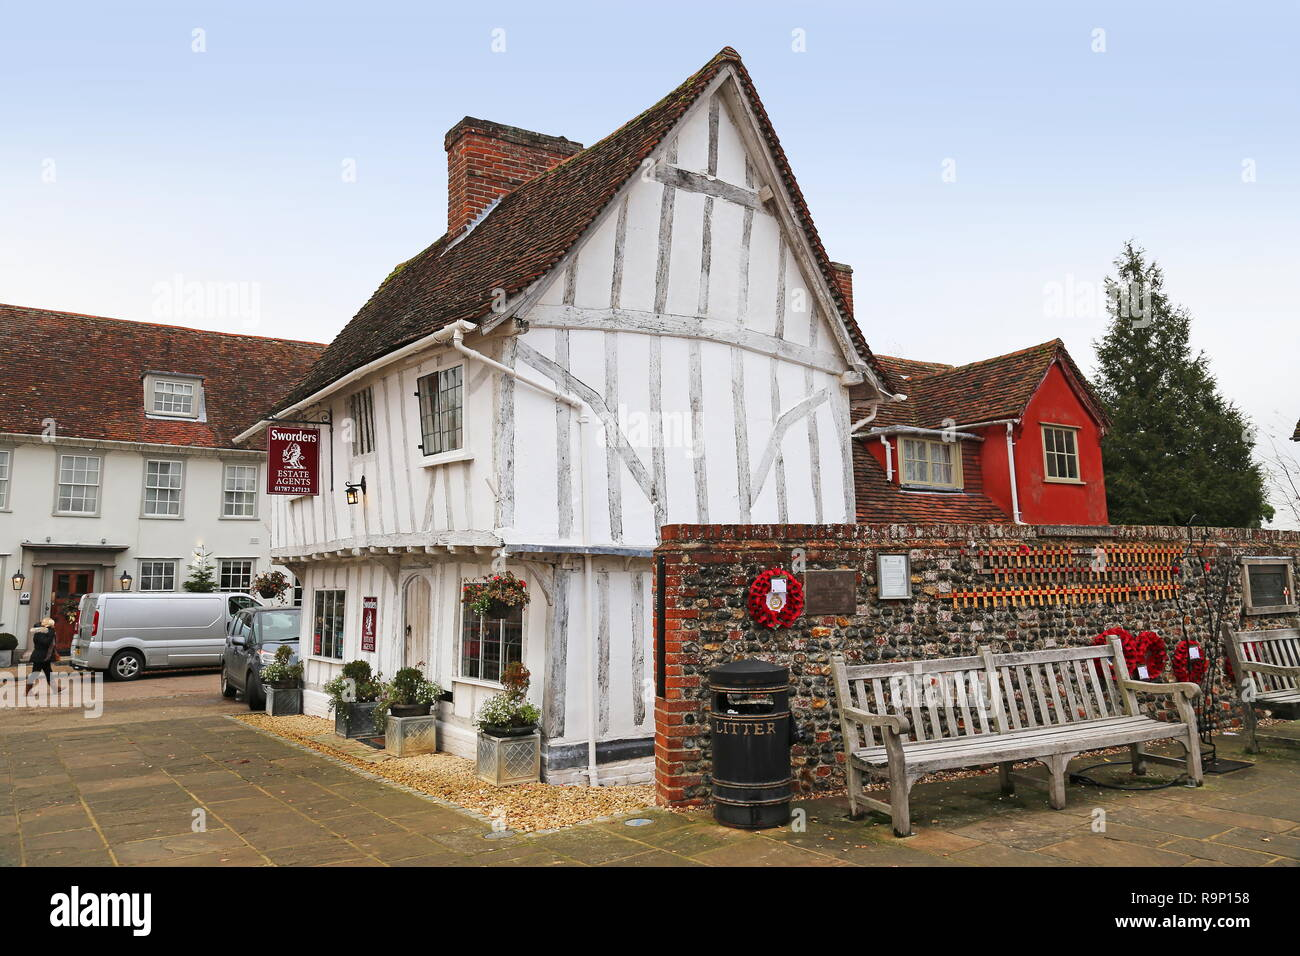 Sworders Estate Agents, Market Place, Lavenham, Babergh district, Suffolk, East Anglia, England, Great Britain, United Kingdom, UK, Europe - Stock Image